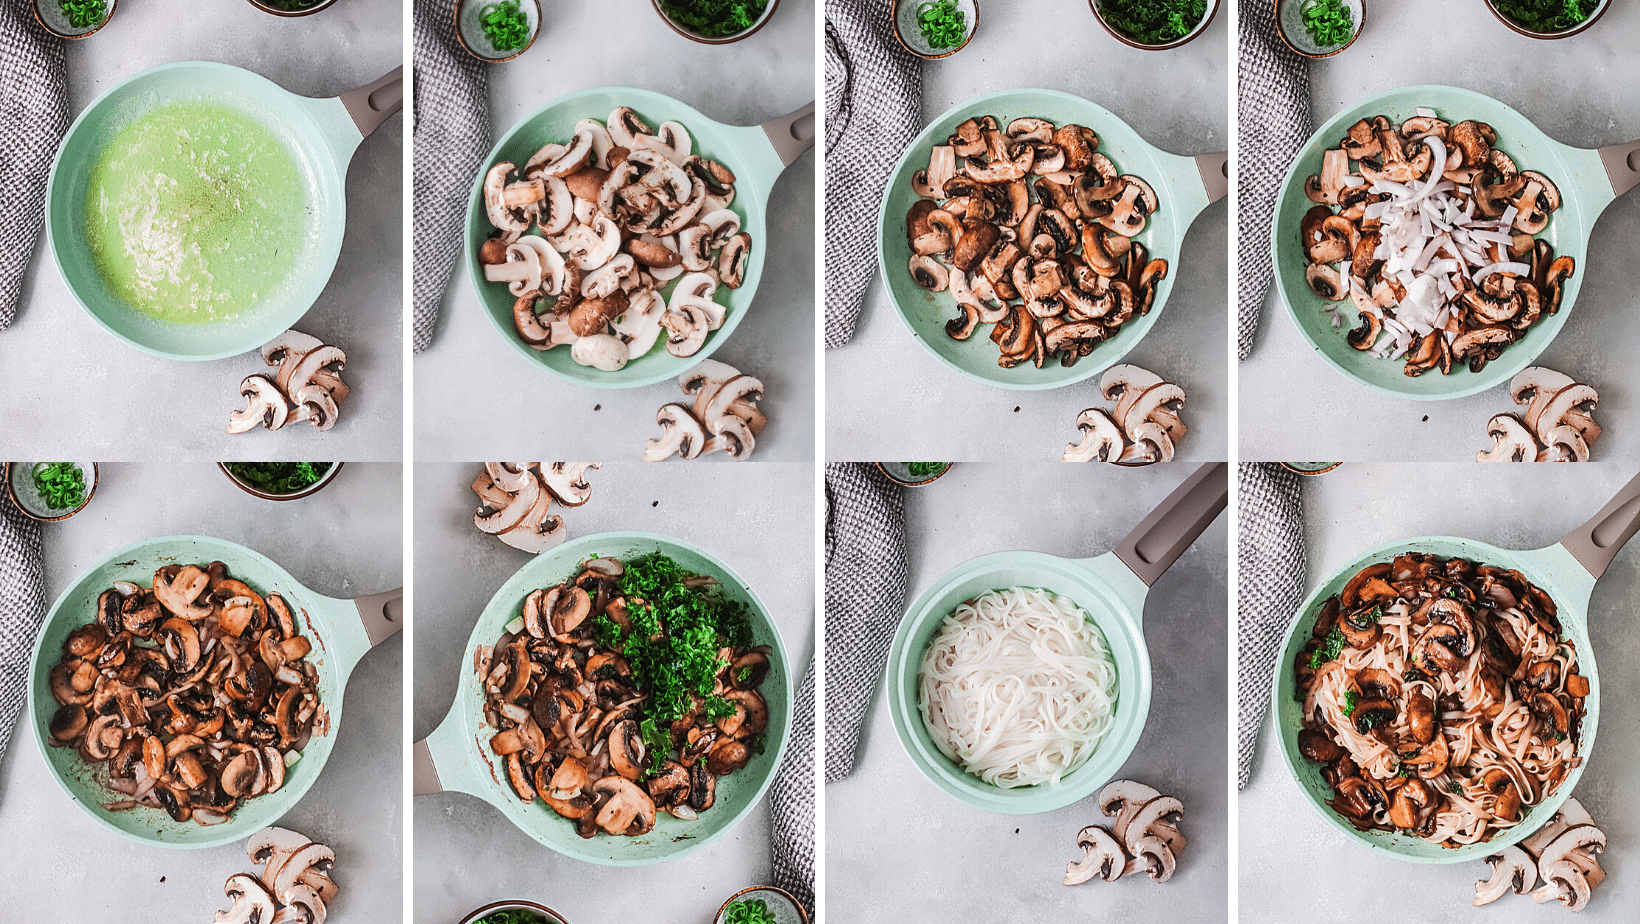 Vegetarian Korean Noodle Cooking Steps. This simple and easy Vegetarian Korean Noodles dish is full of flavor and can be made in under 30 minutes. The Korean noodles are stir-fried in a savory sauce made with fresh vegetables such as mushrooms, red onion, ginger, garlic, and kale.